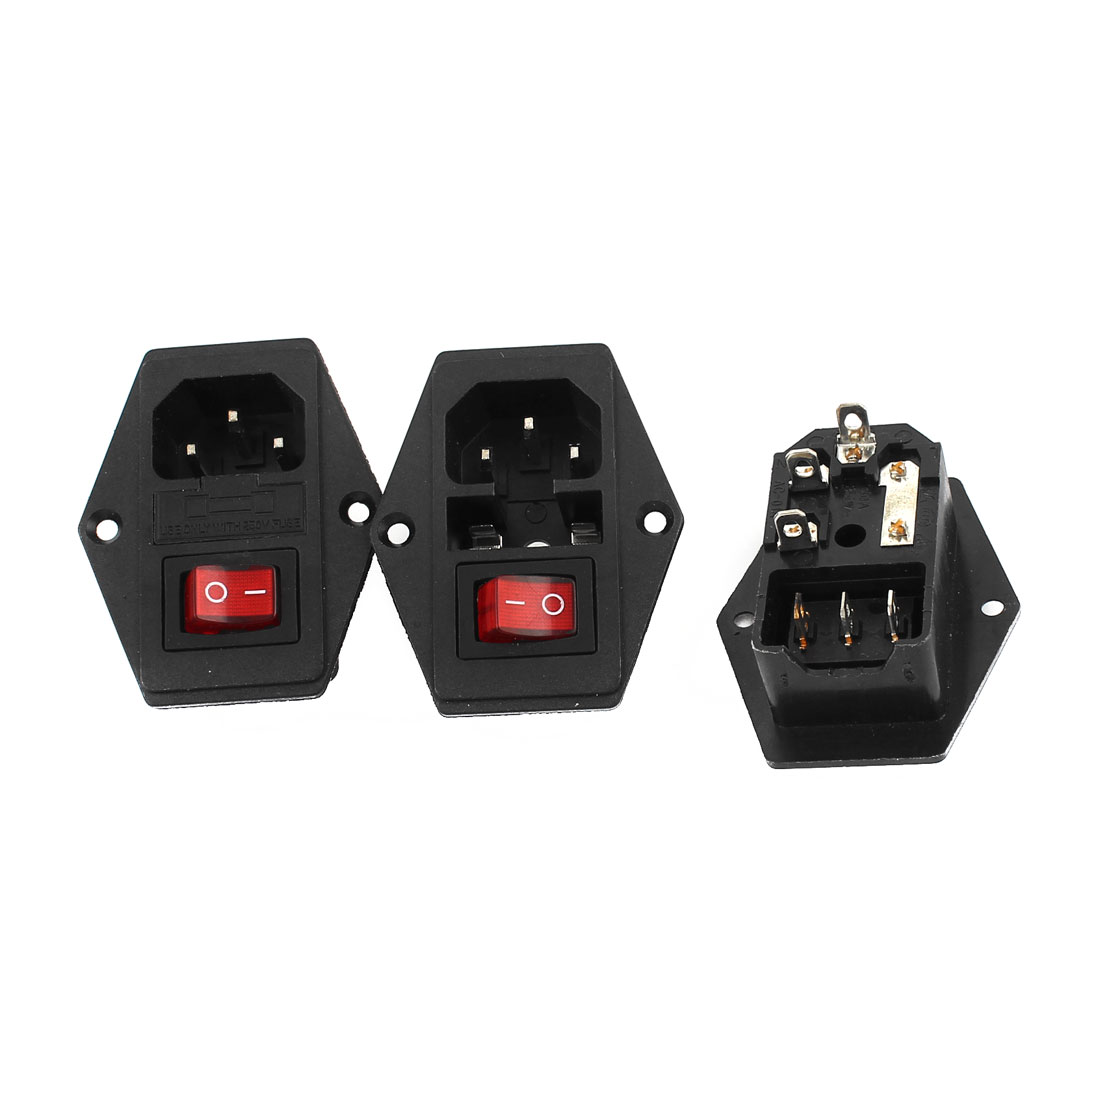 3Pcs Red Pilot Lamp 3Pin Rocker Switch Fuse Holder IEC320 C14 Inlet Power Socket